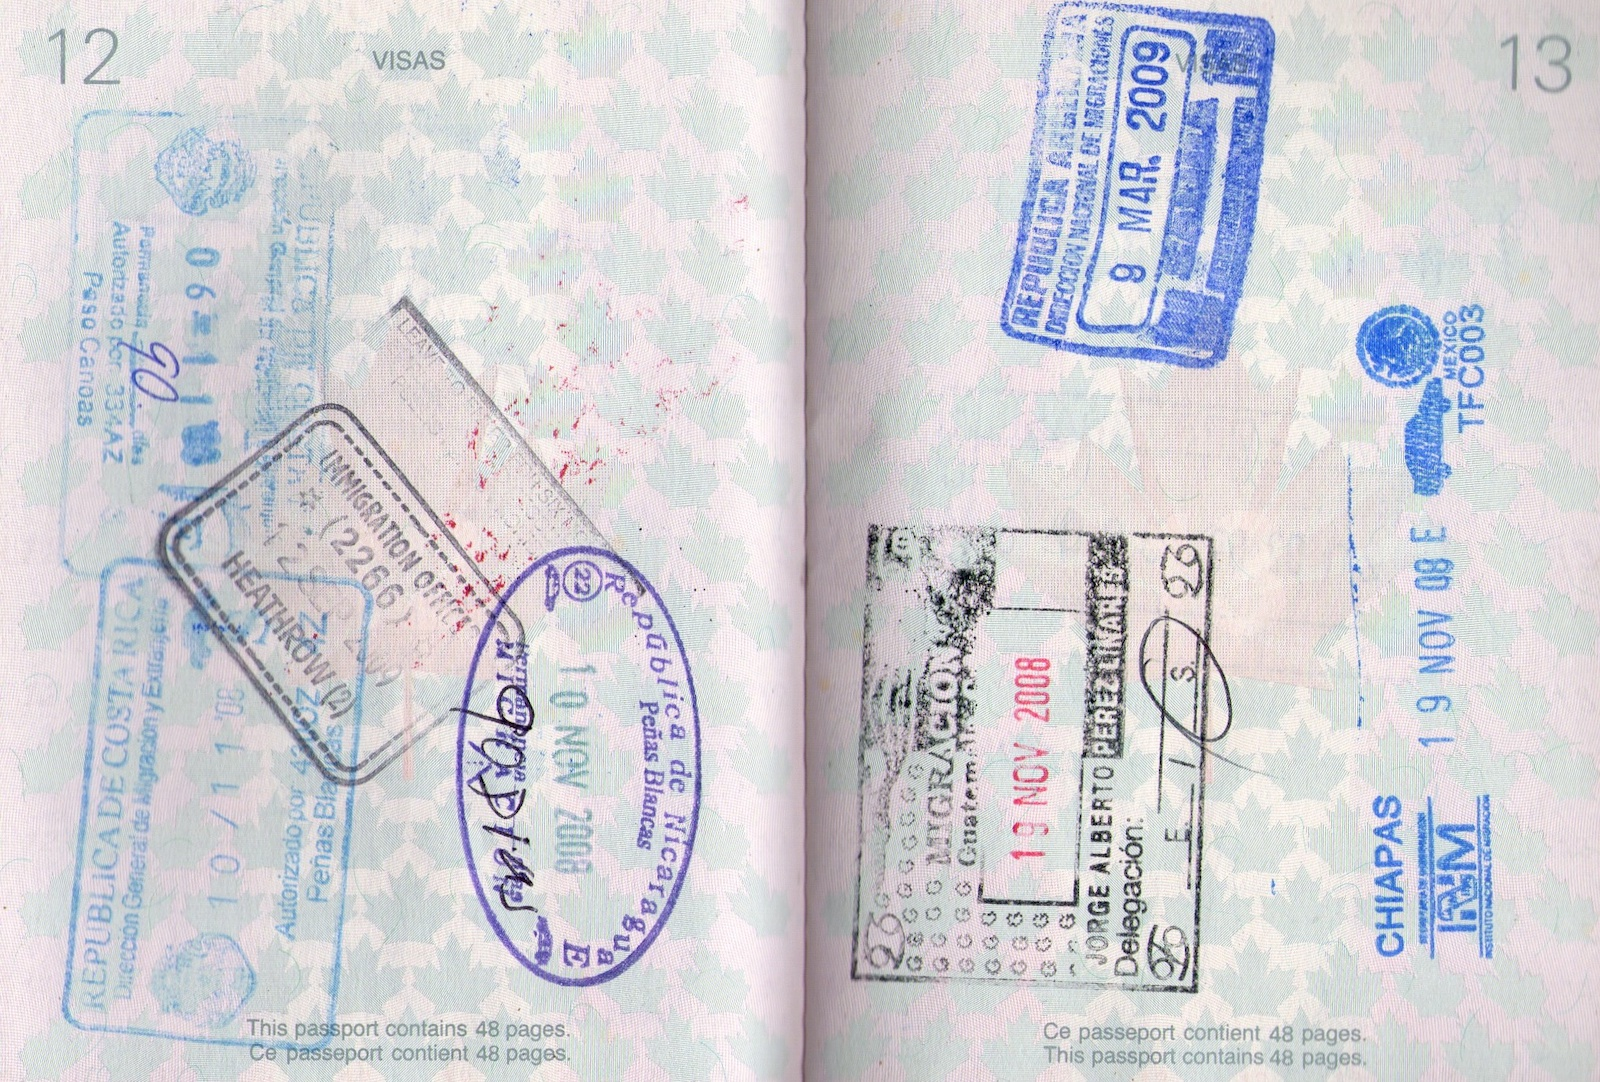 Passport stamp for Costa Rica, UK, Nicaragua, Guatemala, Mexico, Argentina.